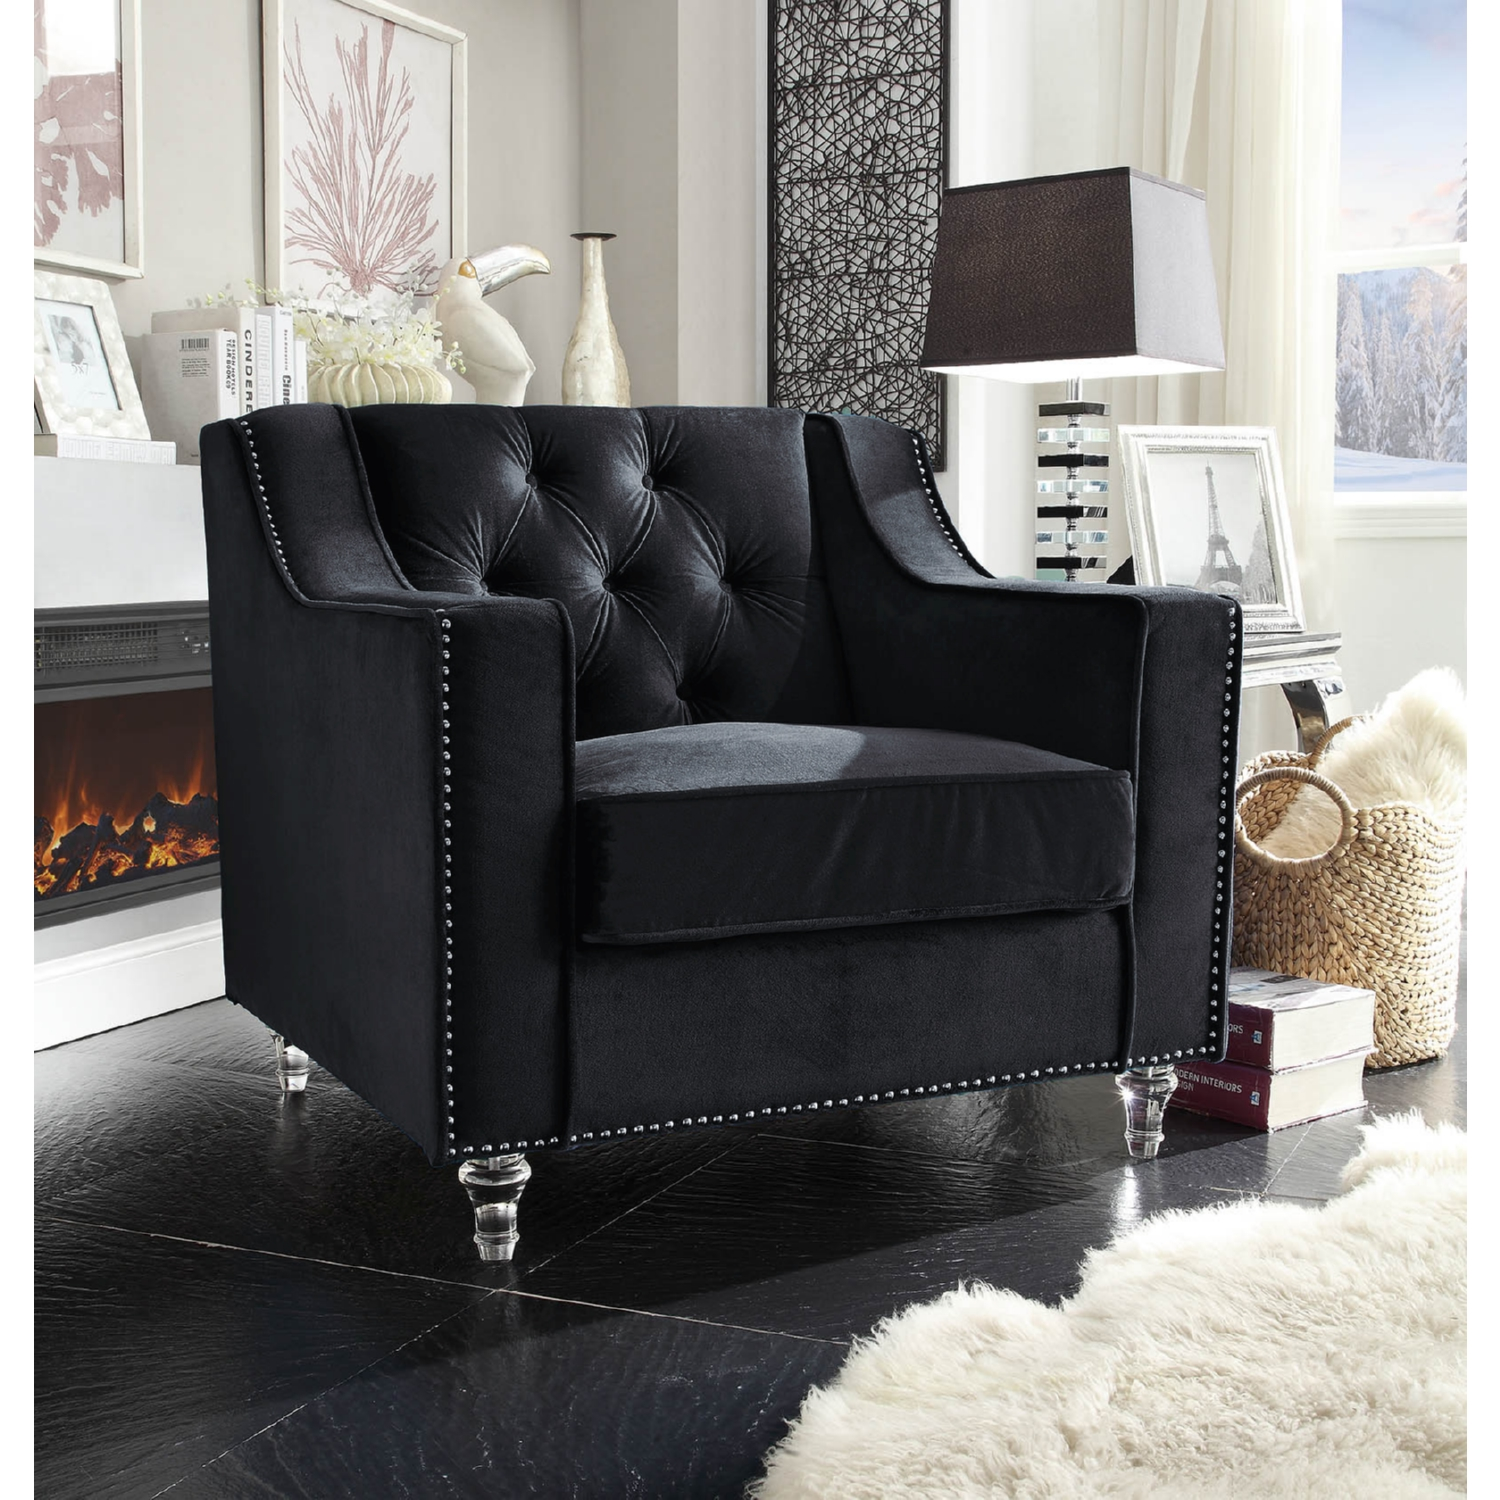 Chic Home FCC2575 Dylan Club Chair in Tufted Black Velvet on Round